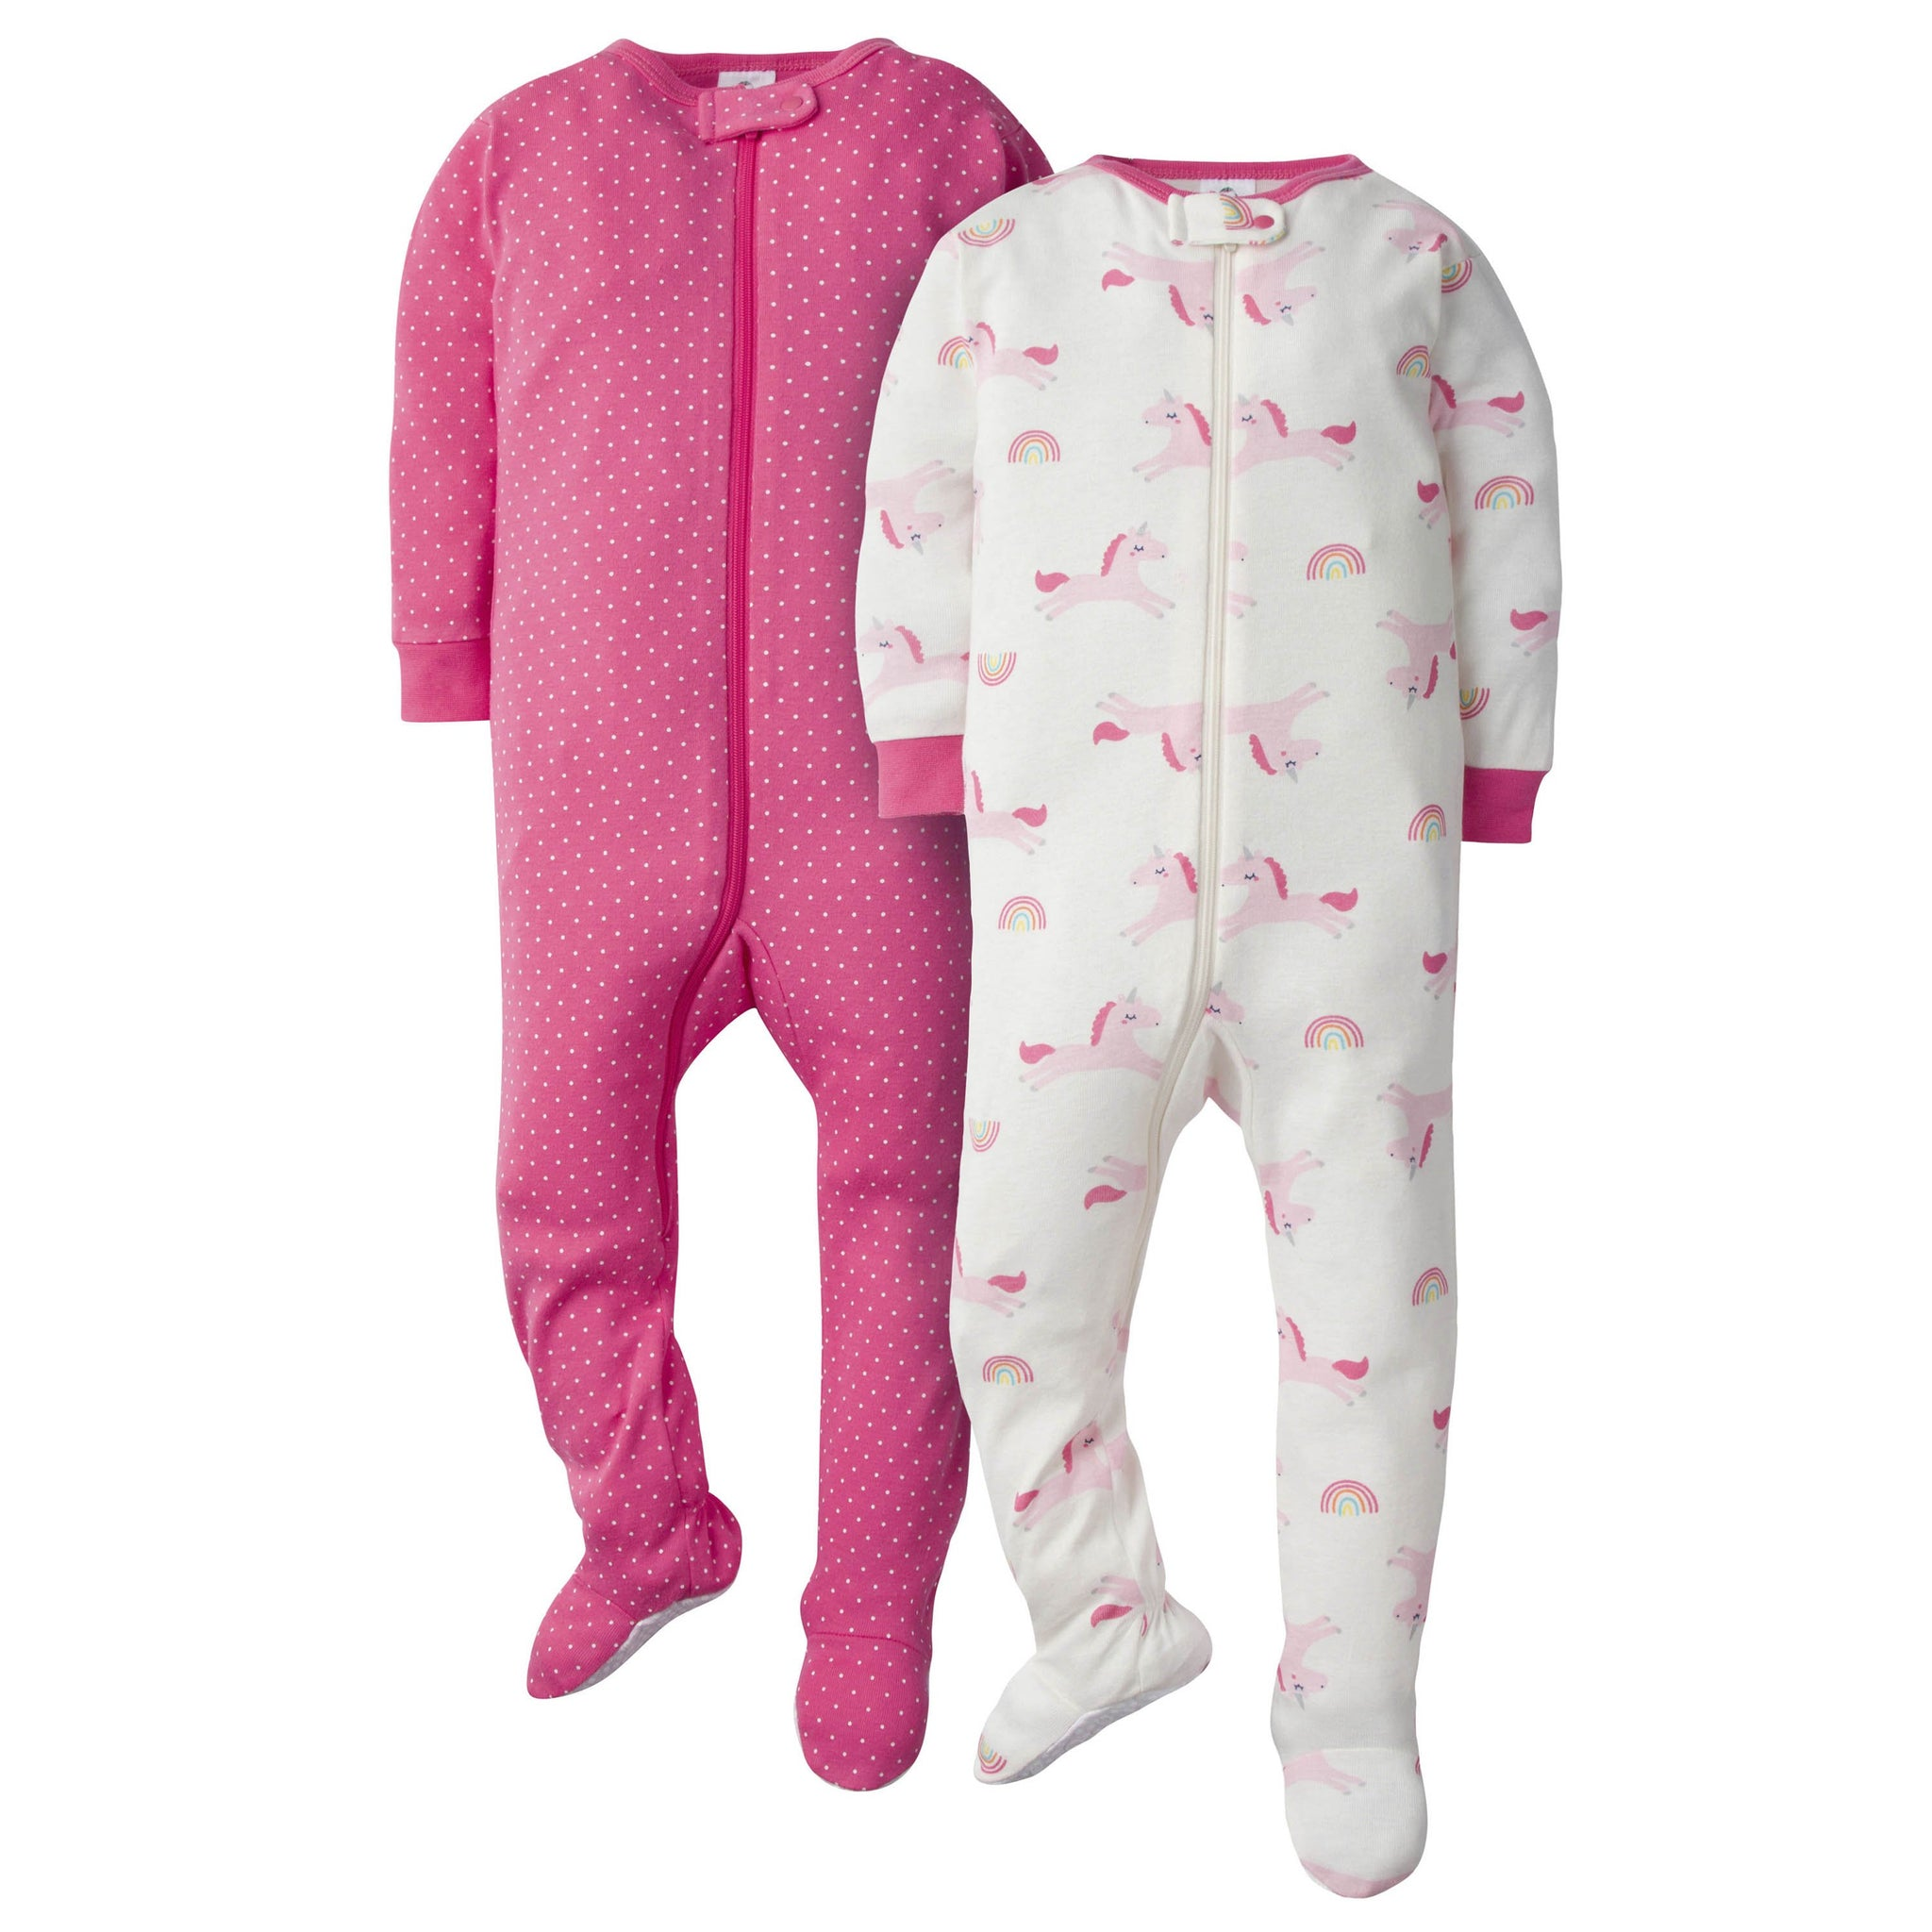 2-Pack Baby Girls Unicorn Footed Union Suits